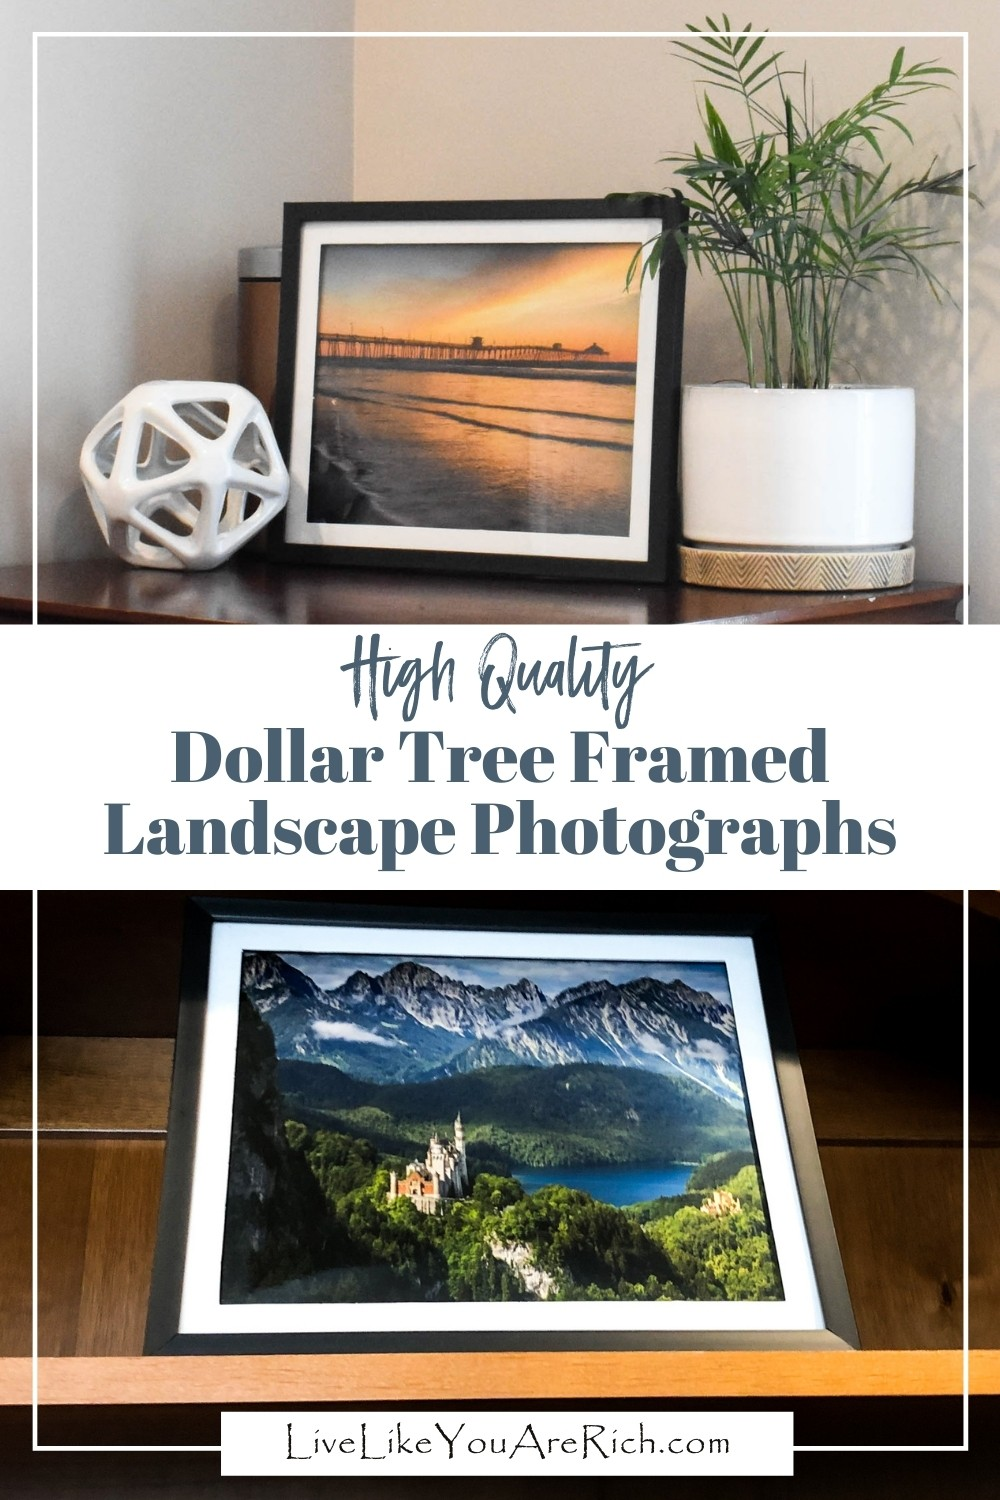 I made these high quality dollar tree framed landscape photographs for $2.50 each. They turned out great and have added beauty and color to my office. When decorating a space that is important to you, or that you will spend a lot of time in, it is nice to have decor that uplifts and brings good feelings or nostalgia.